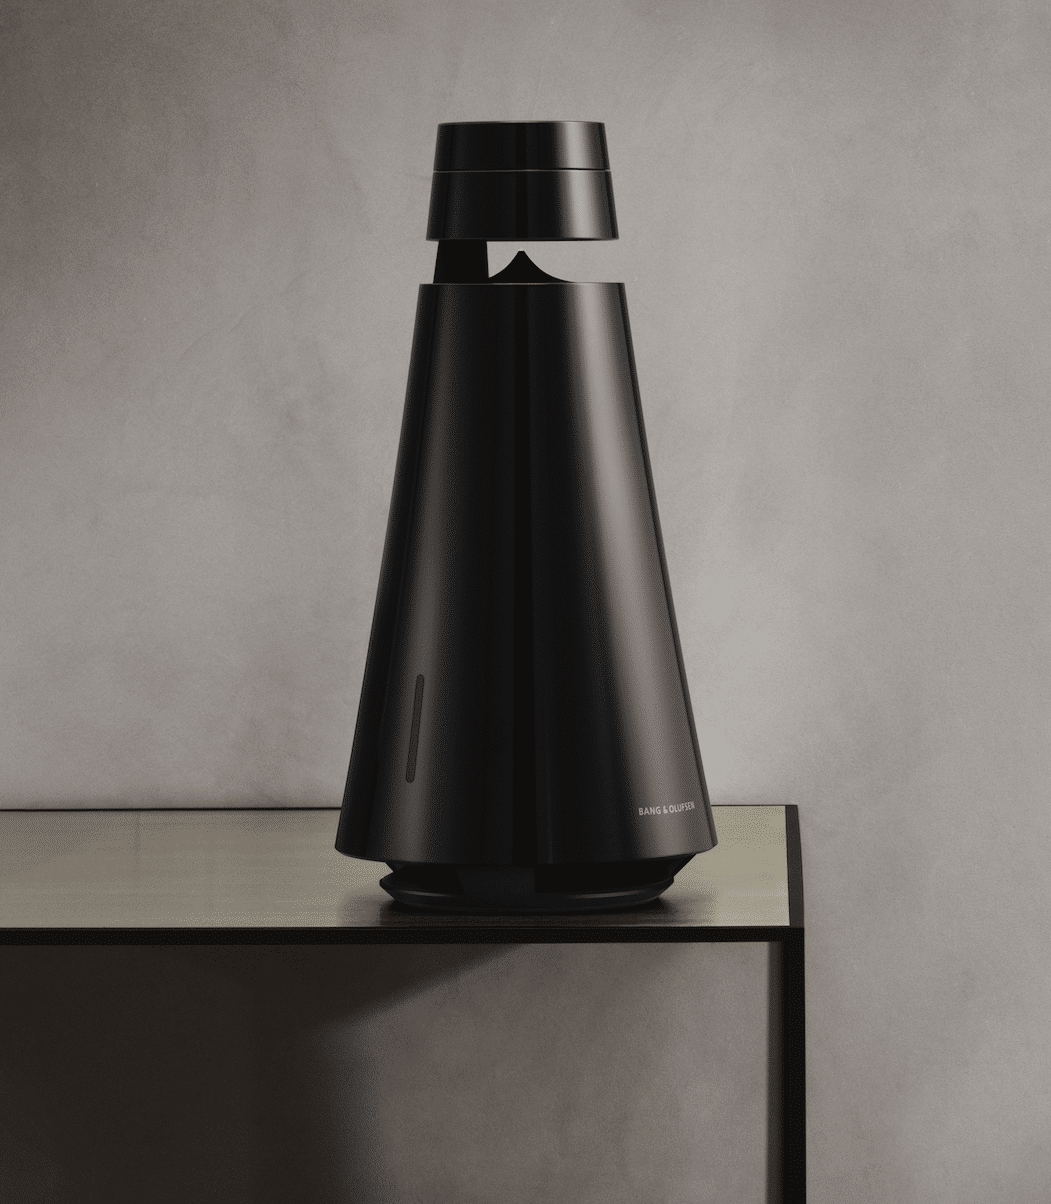 beosound 1 piano black from bang olufsen the. Black Bedroom Furniture Sets. Home Design Ideas